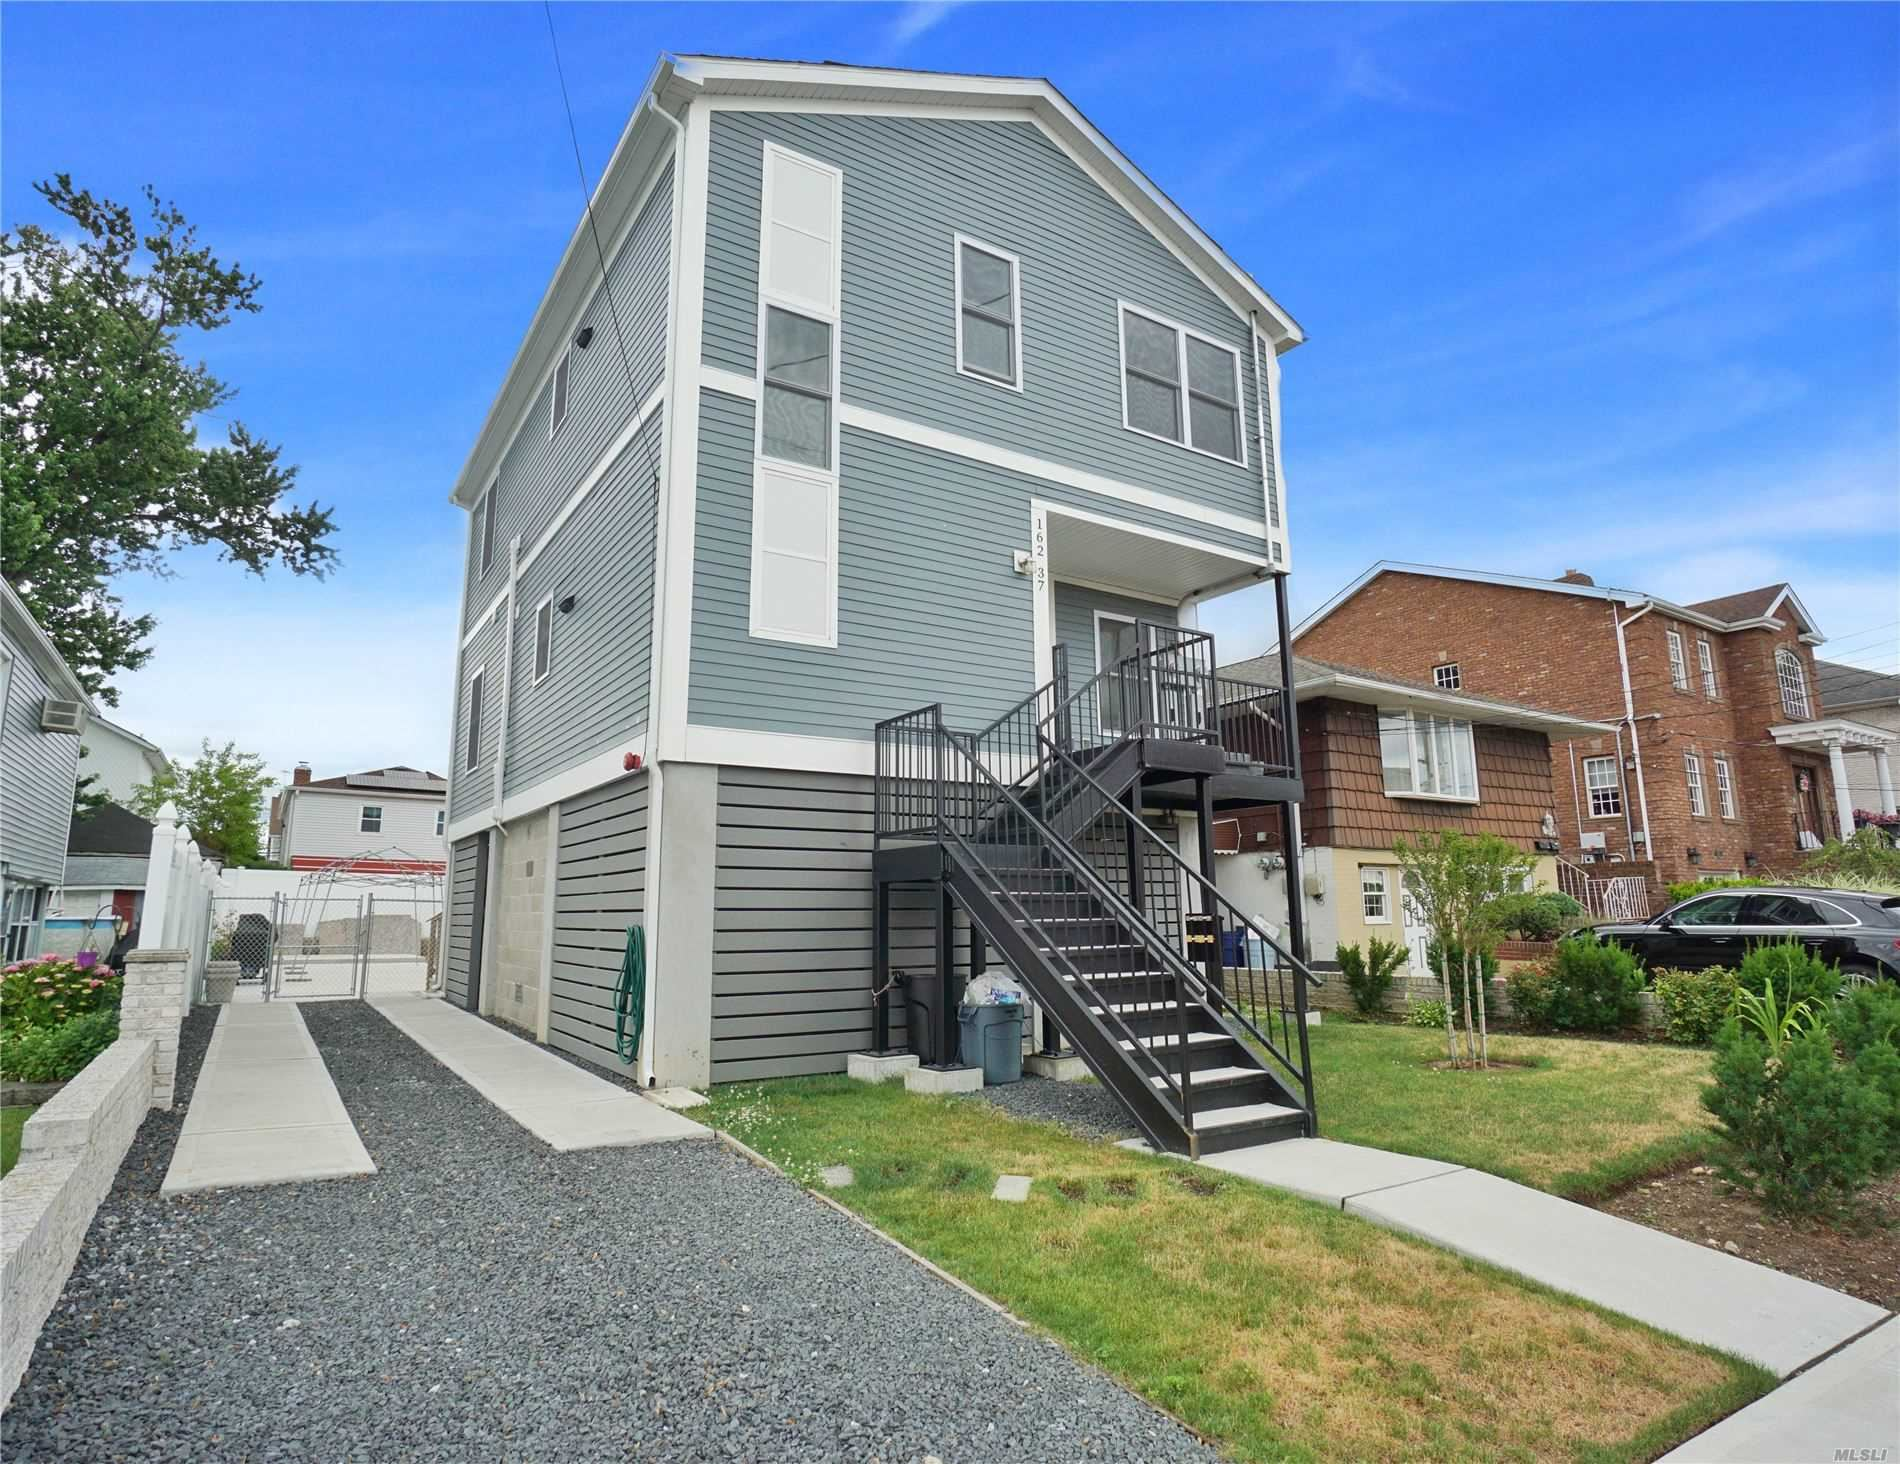 162-37 95th Street, Howard Beach, NY 11414 - MLS#: 3227125